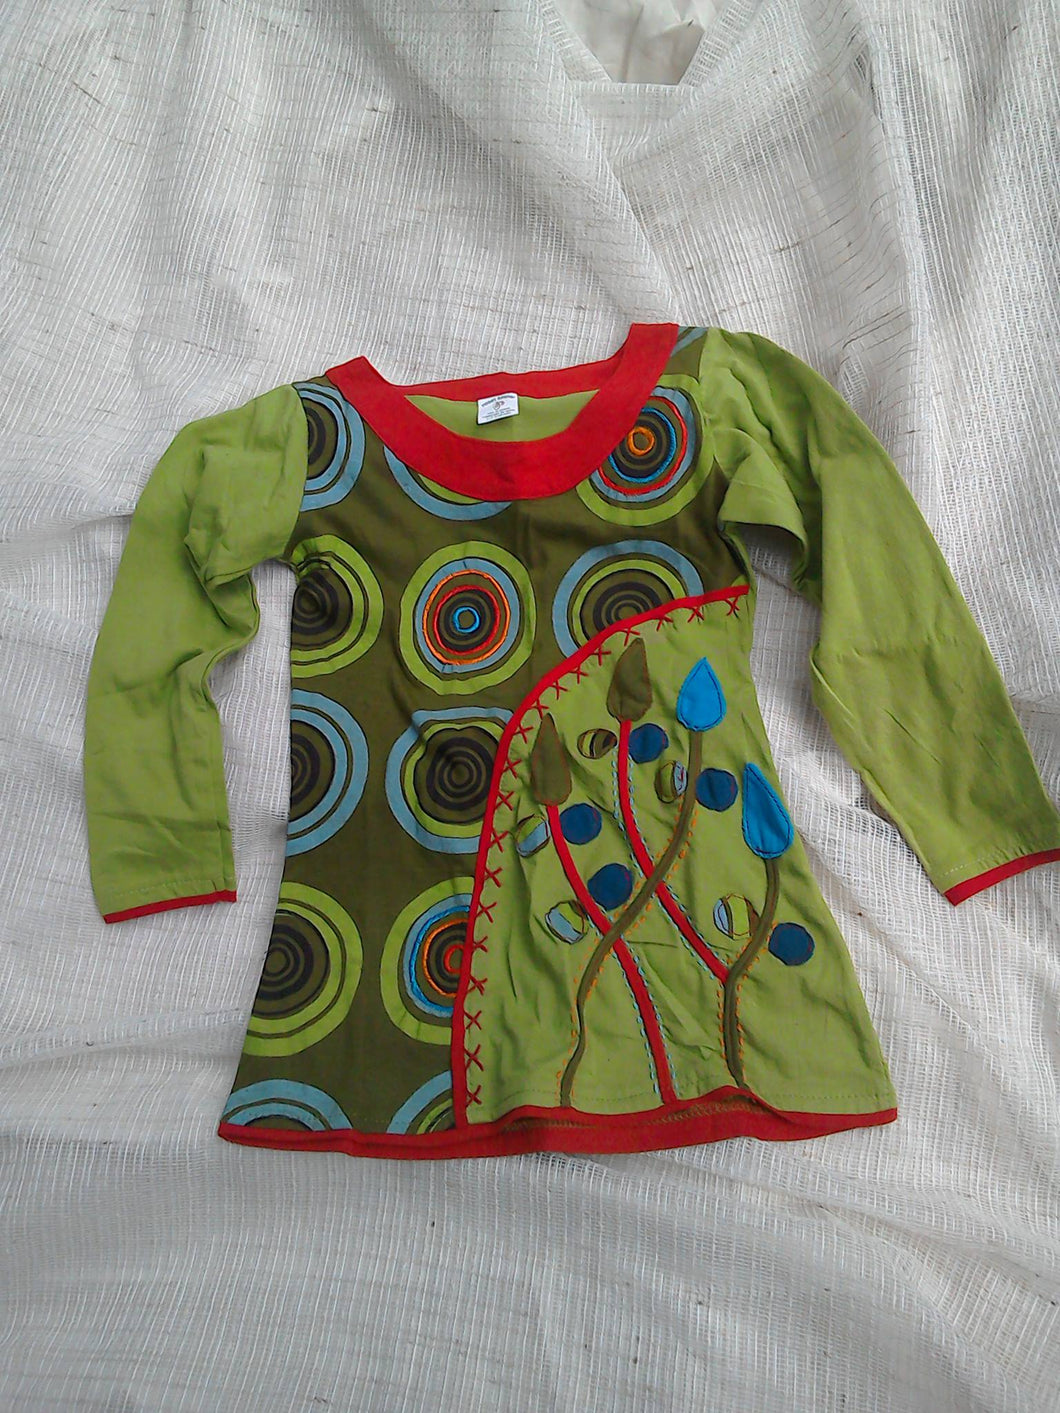 Long-Sleeved Cotton Boho Circle and Plant Dress - Age 4-5